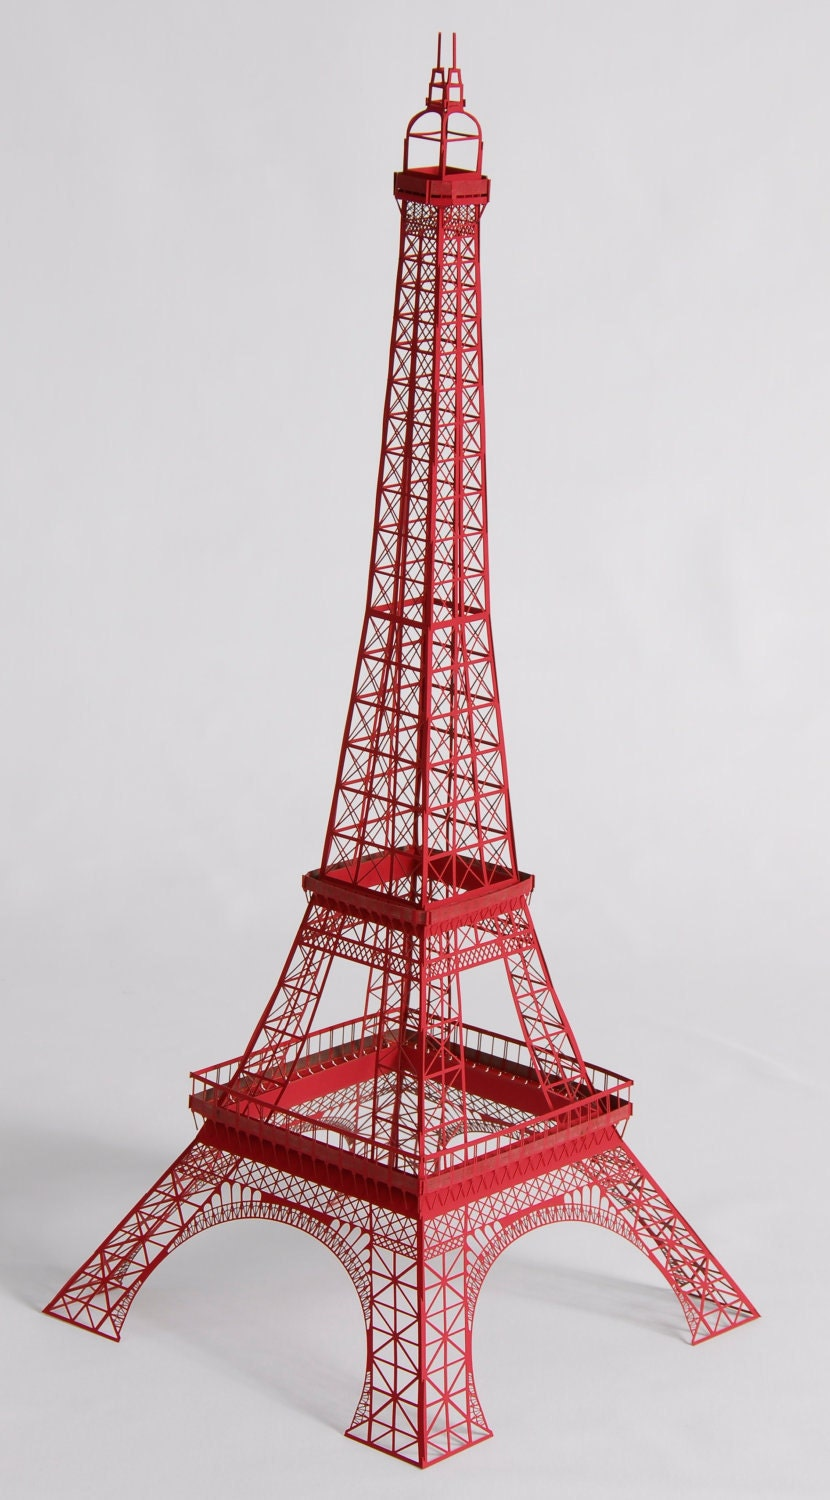 eiffel tower model template - 22 papercraft red eiffel tower model with full